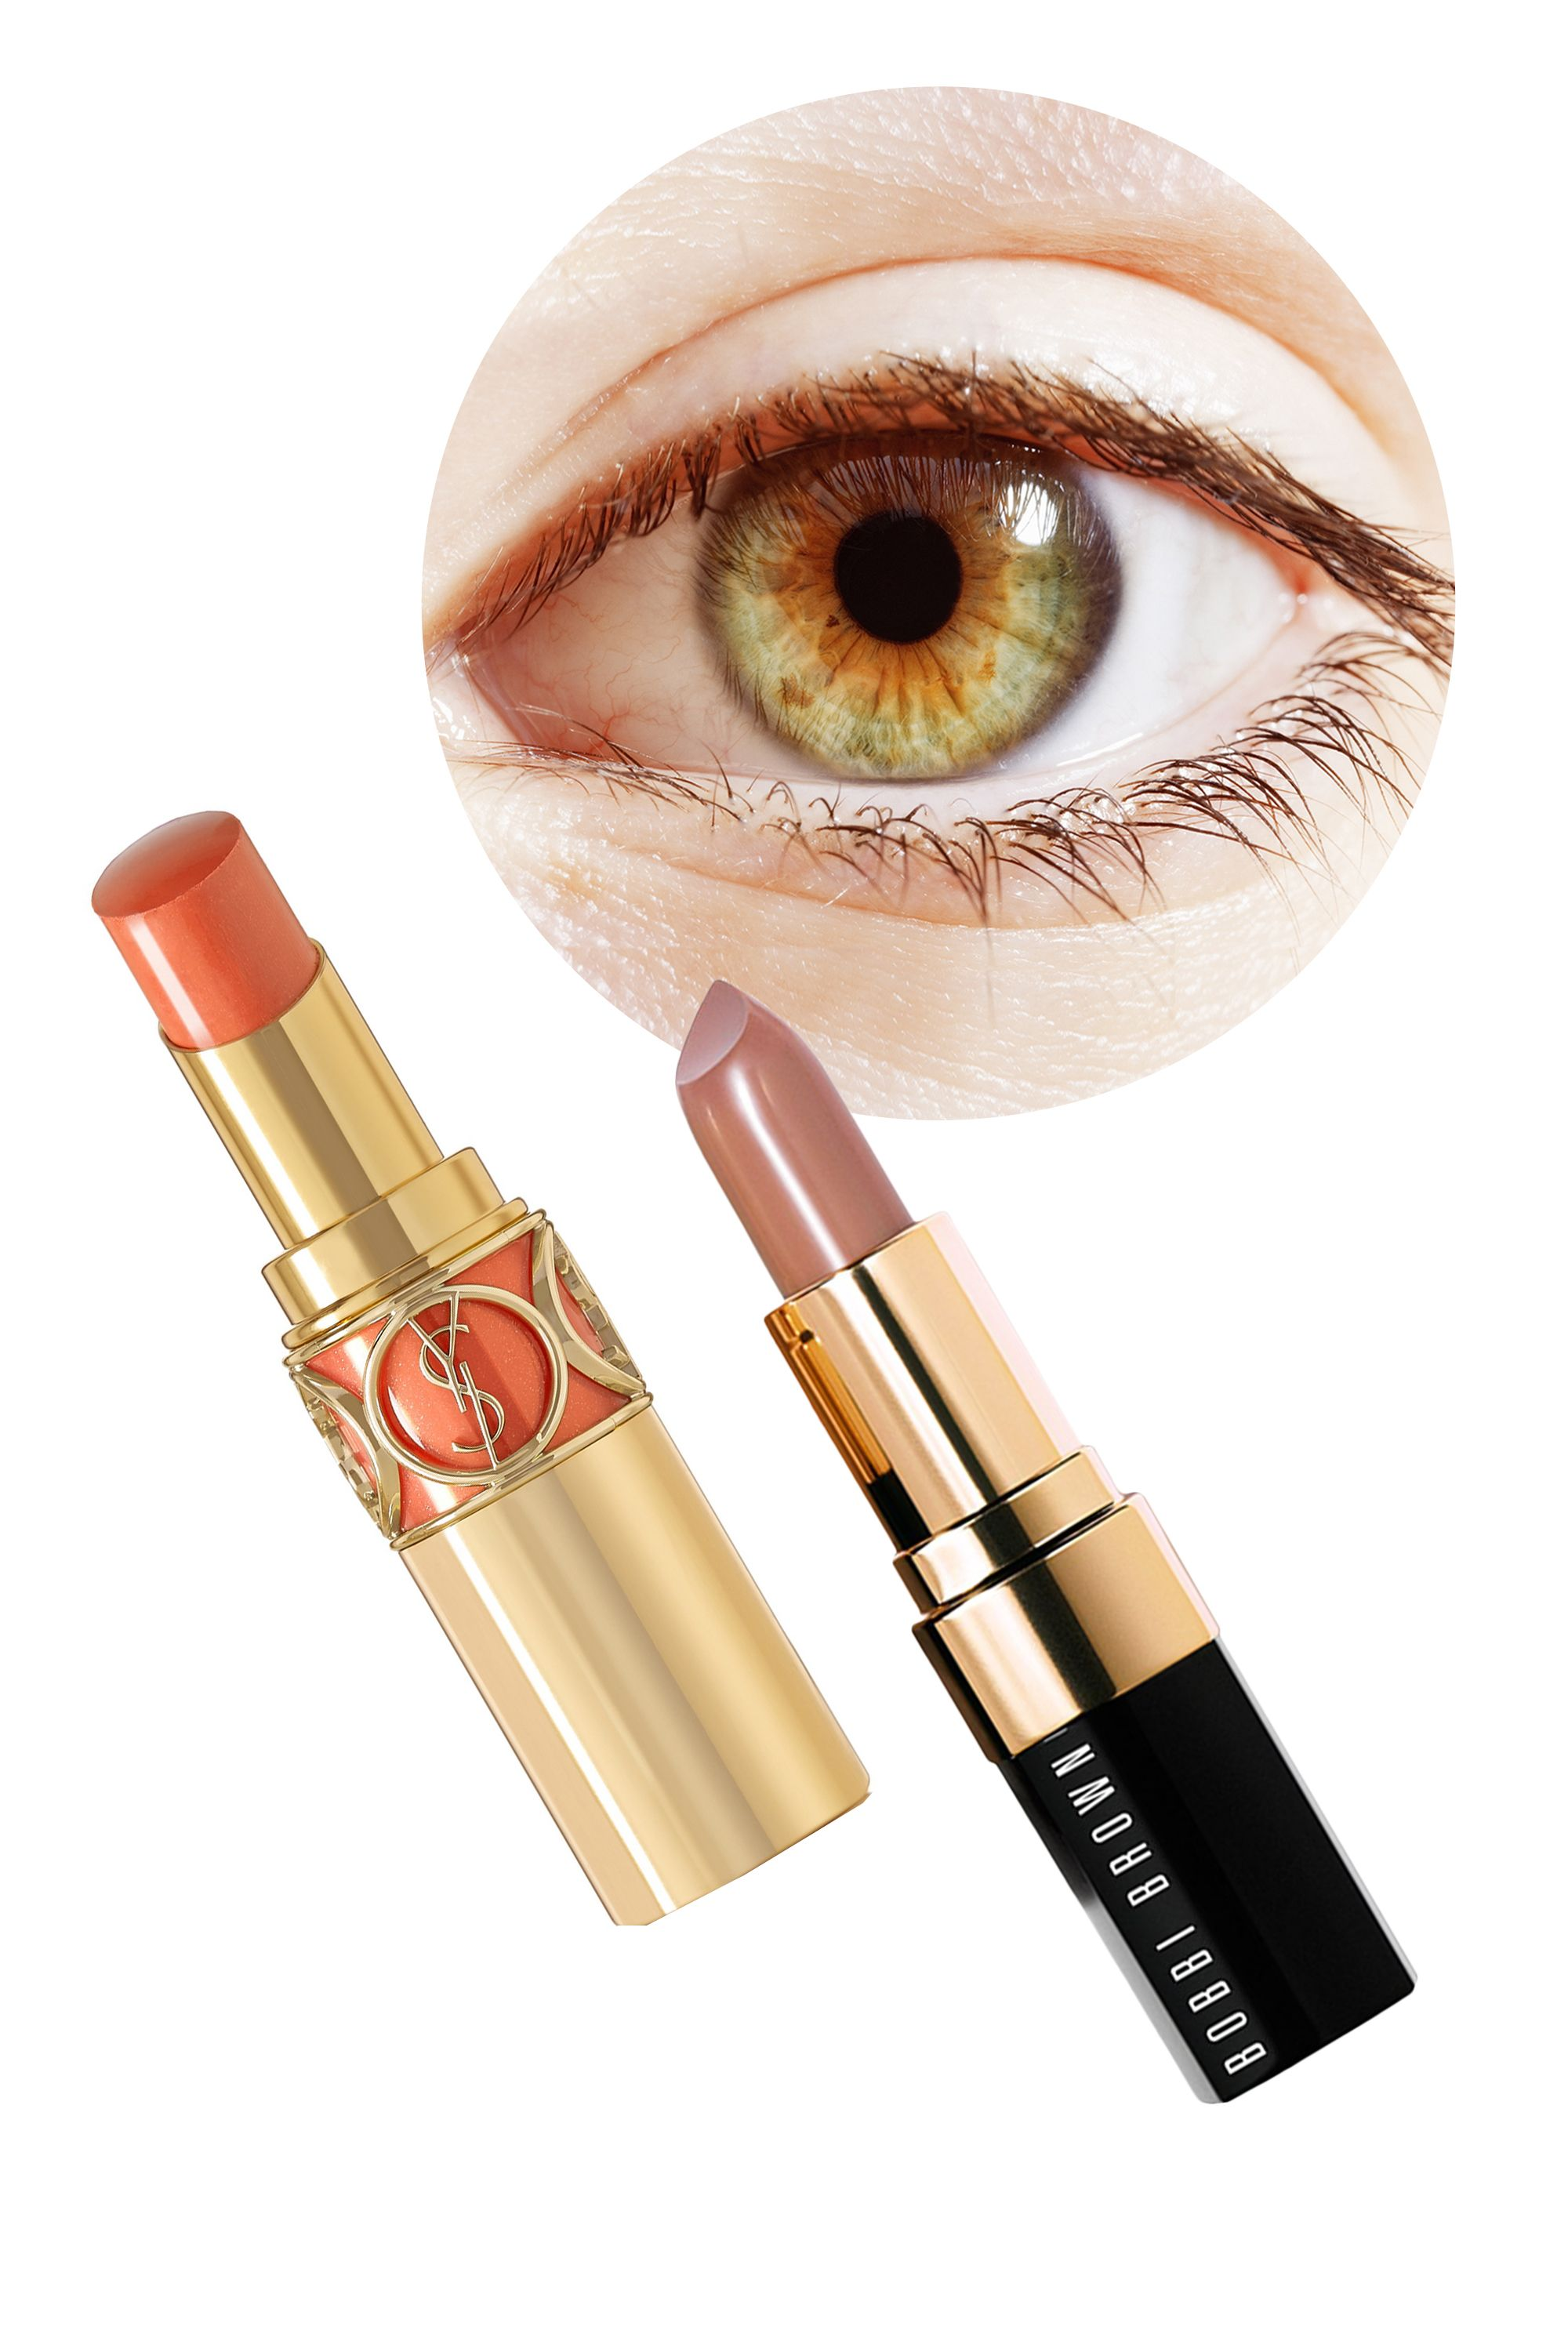 Lipstick Eyecolor Combination Lipstick Based On Eye Color